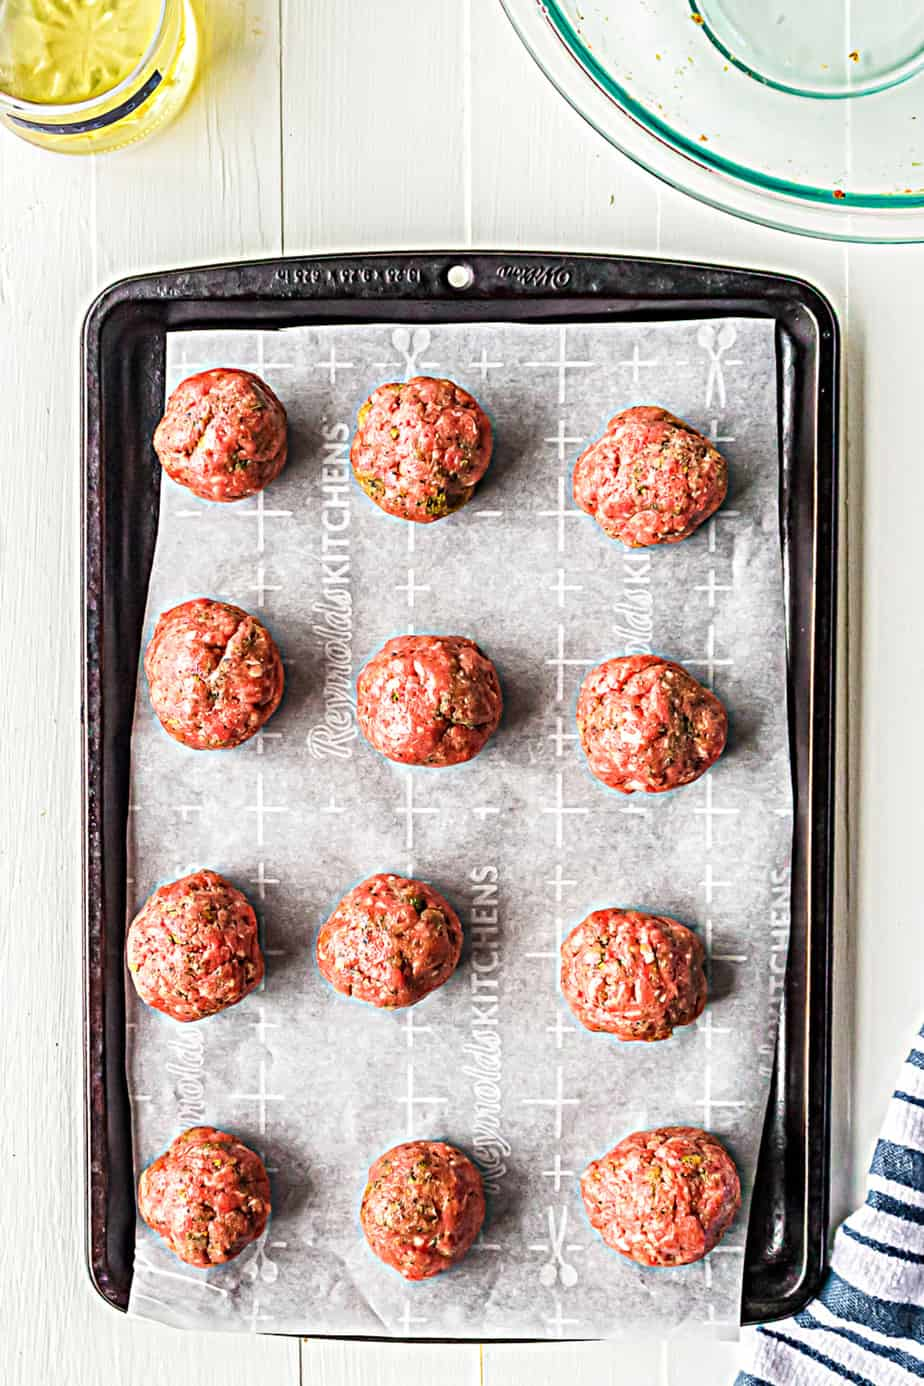 Overhead look at twelve raw meatballs on a baking pan lined with parchment paper.